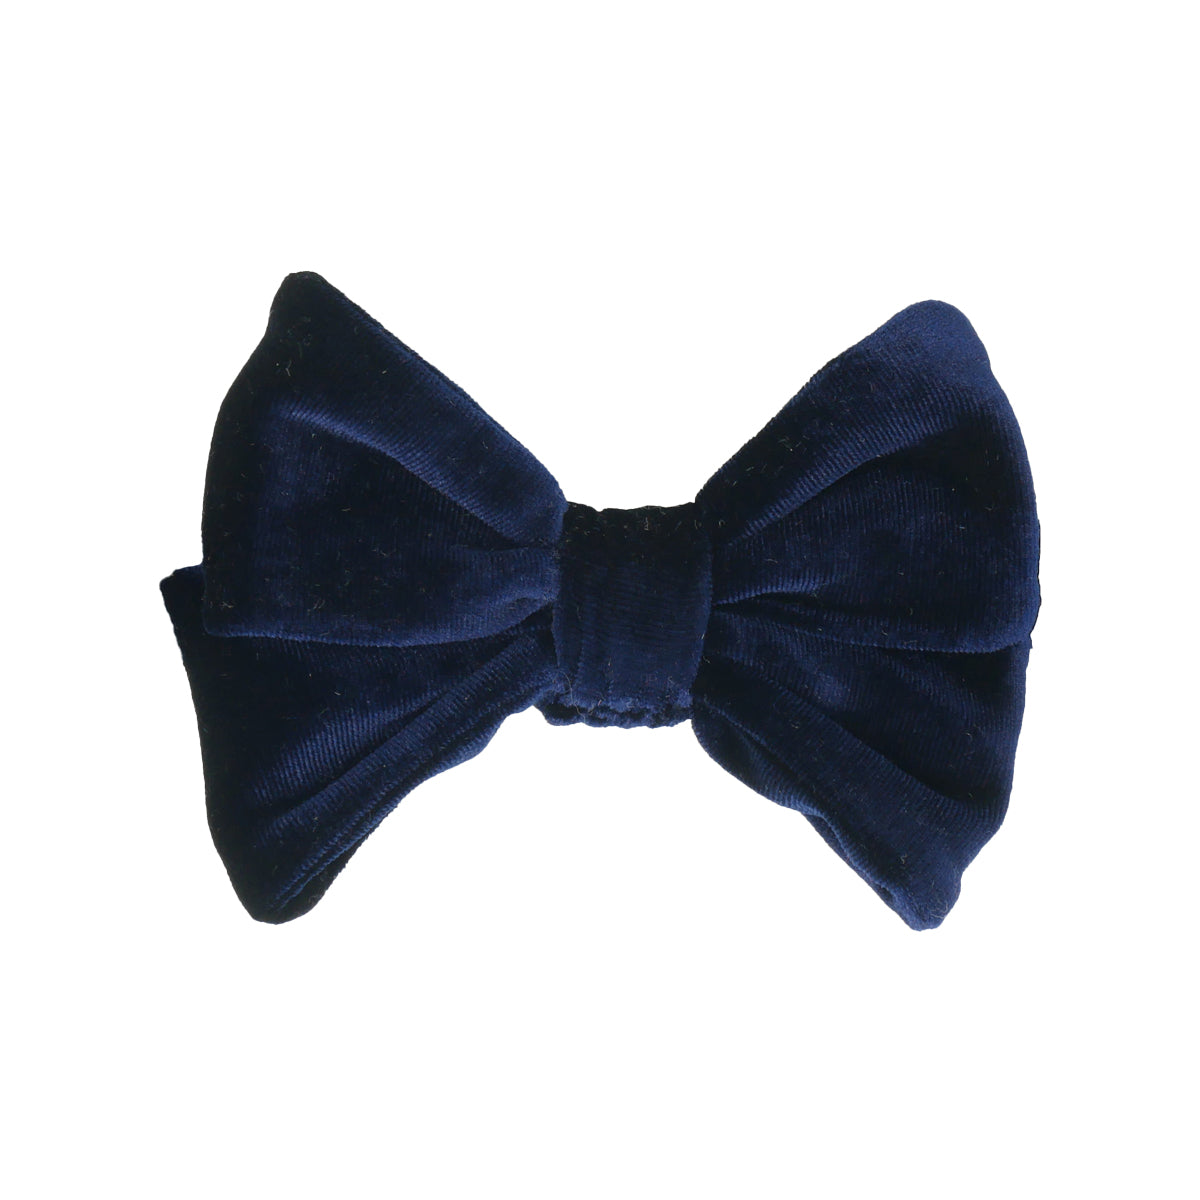 Bow tie - Emily - Blue